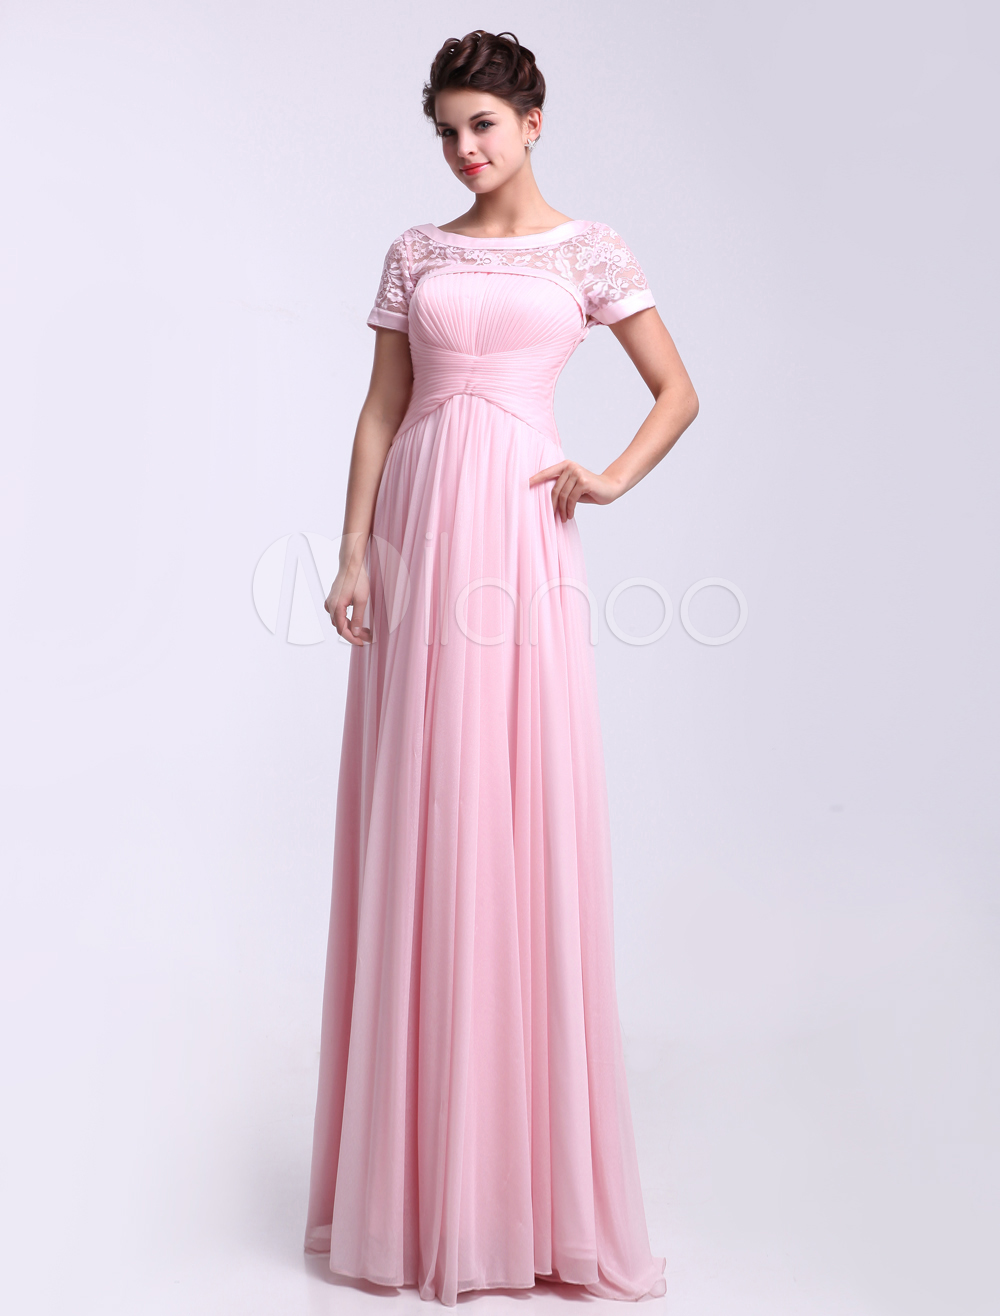 glamgowncom  New Wedding Dresses Canada OnlineCheap